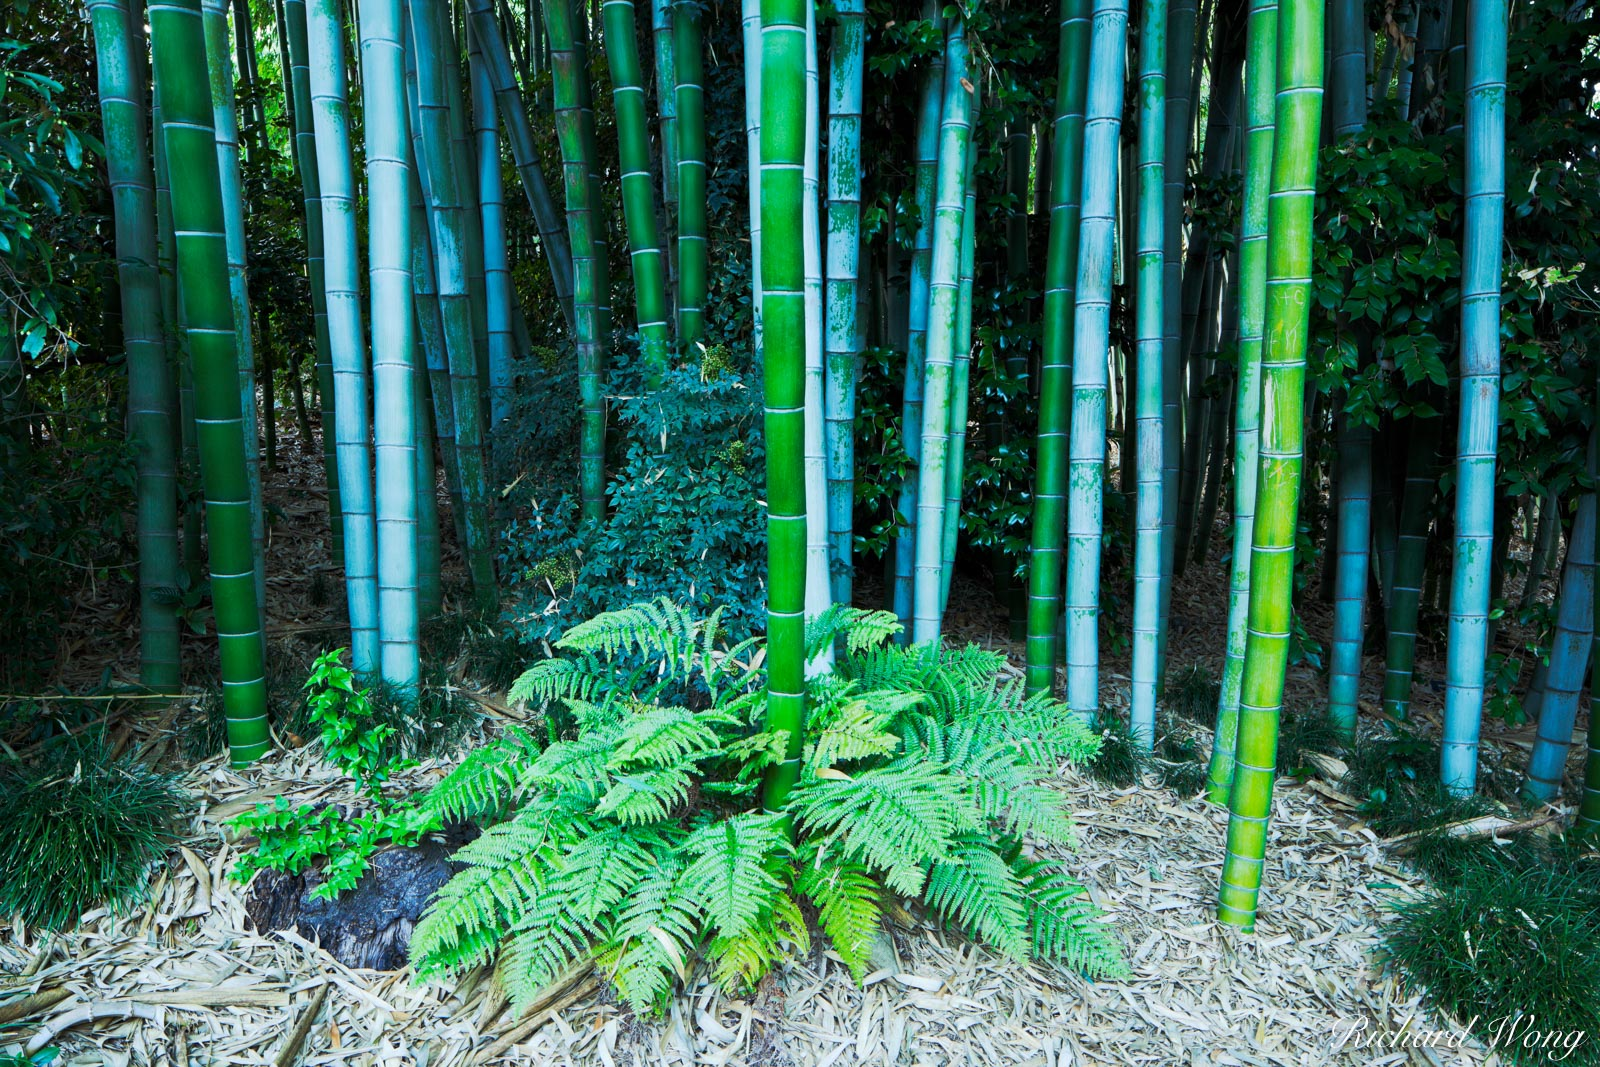 Bamboo in Japanese Garden at The Huntington, San Marino, California, photo, photo